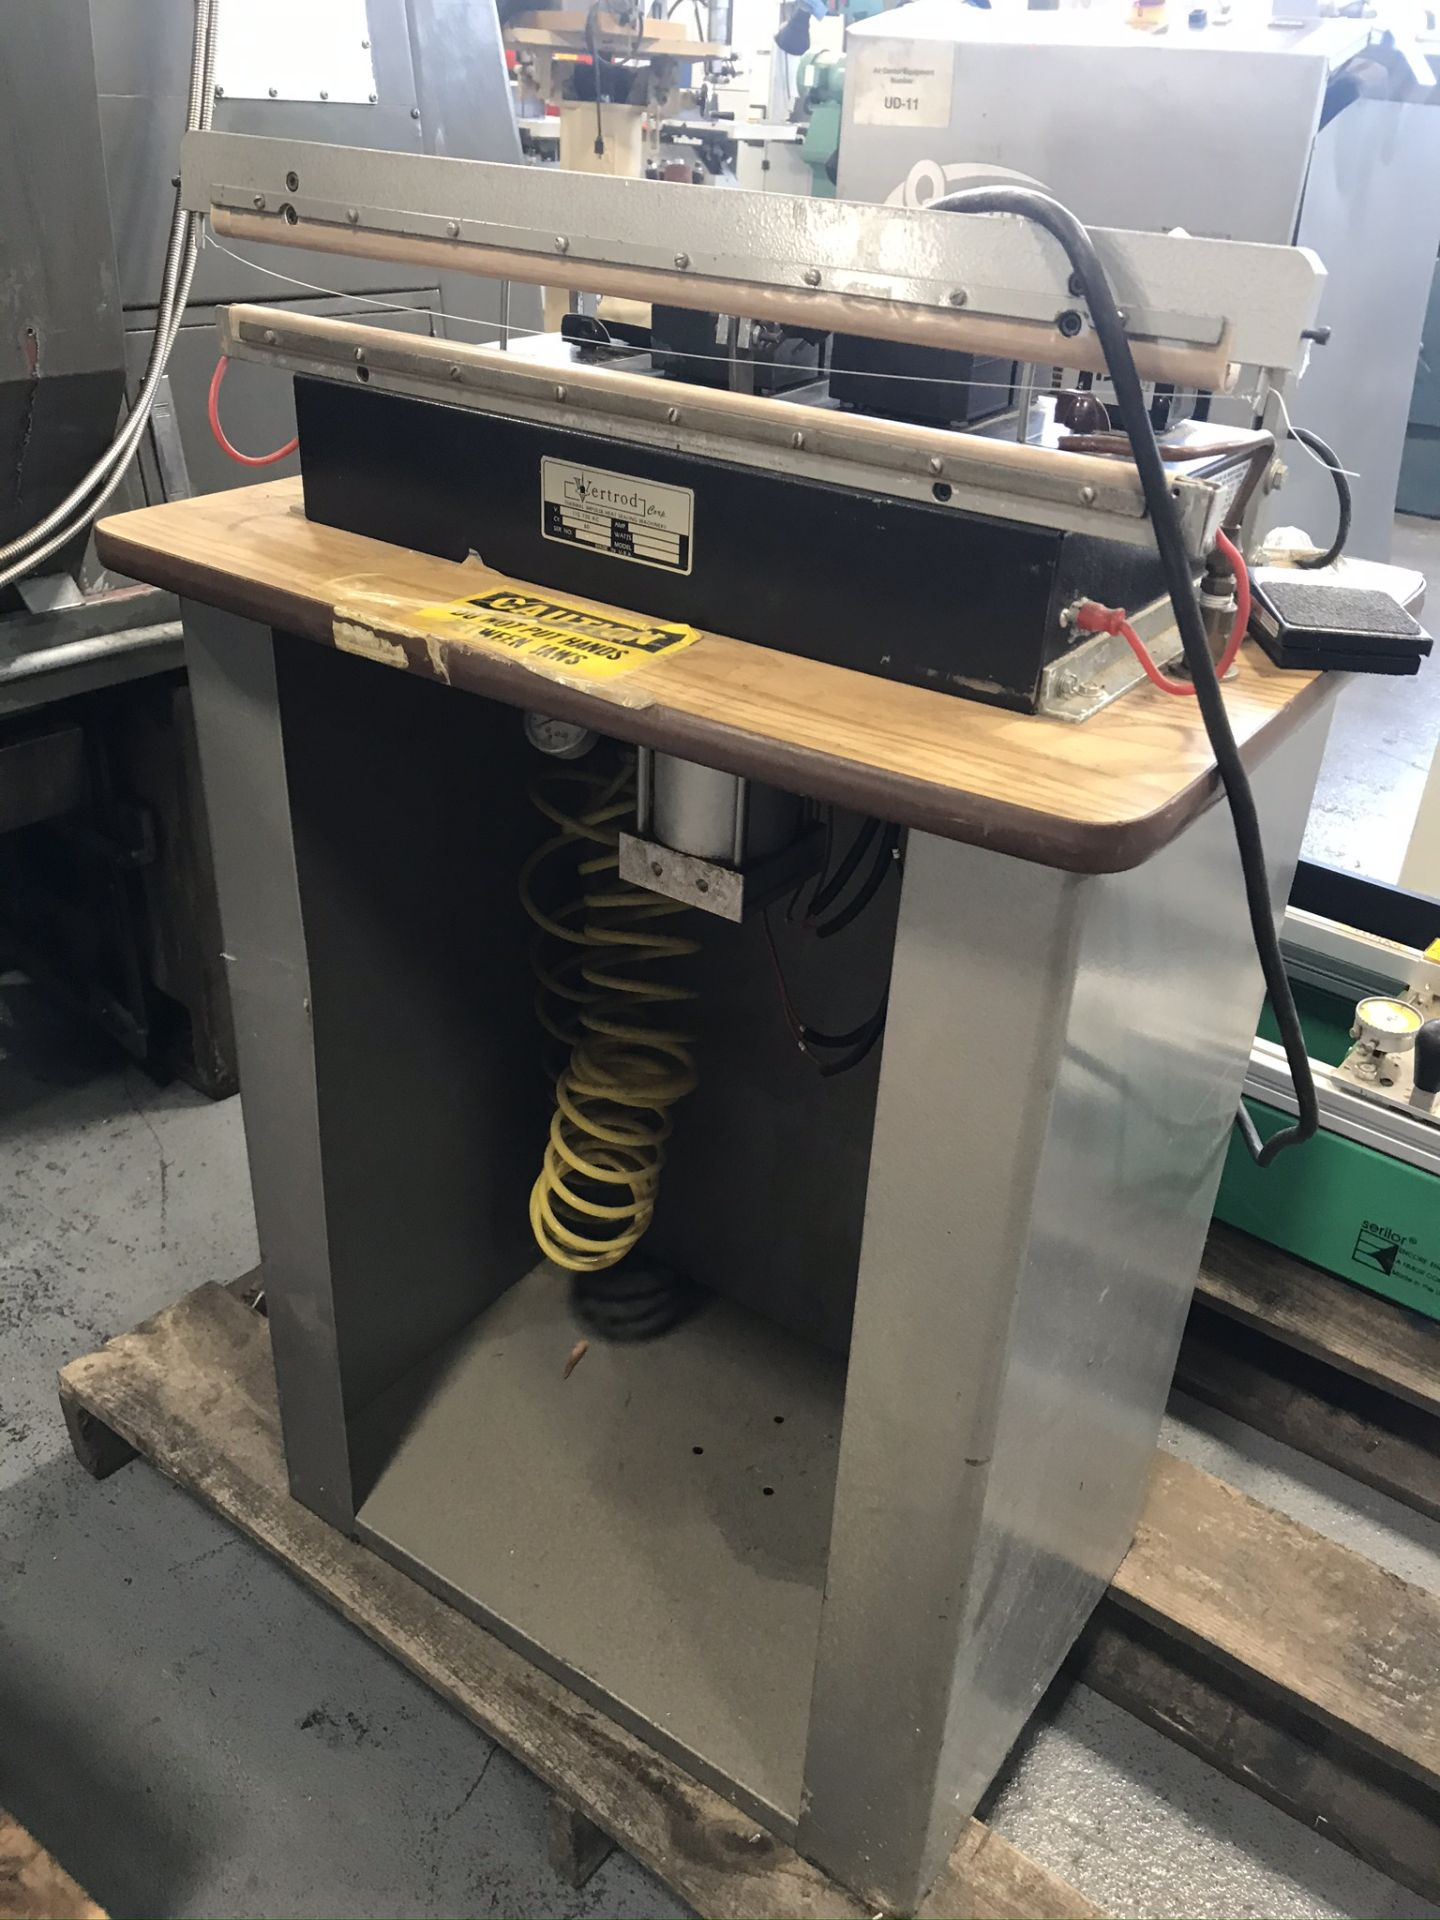 Vertrod 20PCB Pneumatic Thermal Impulse Sealer w/ Portable Elect Foot Pedal & Stand